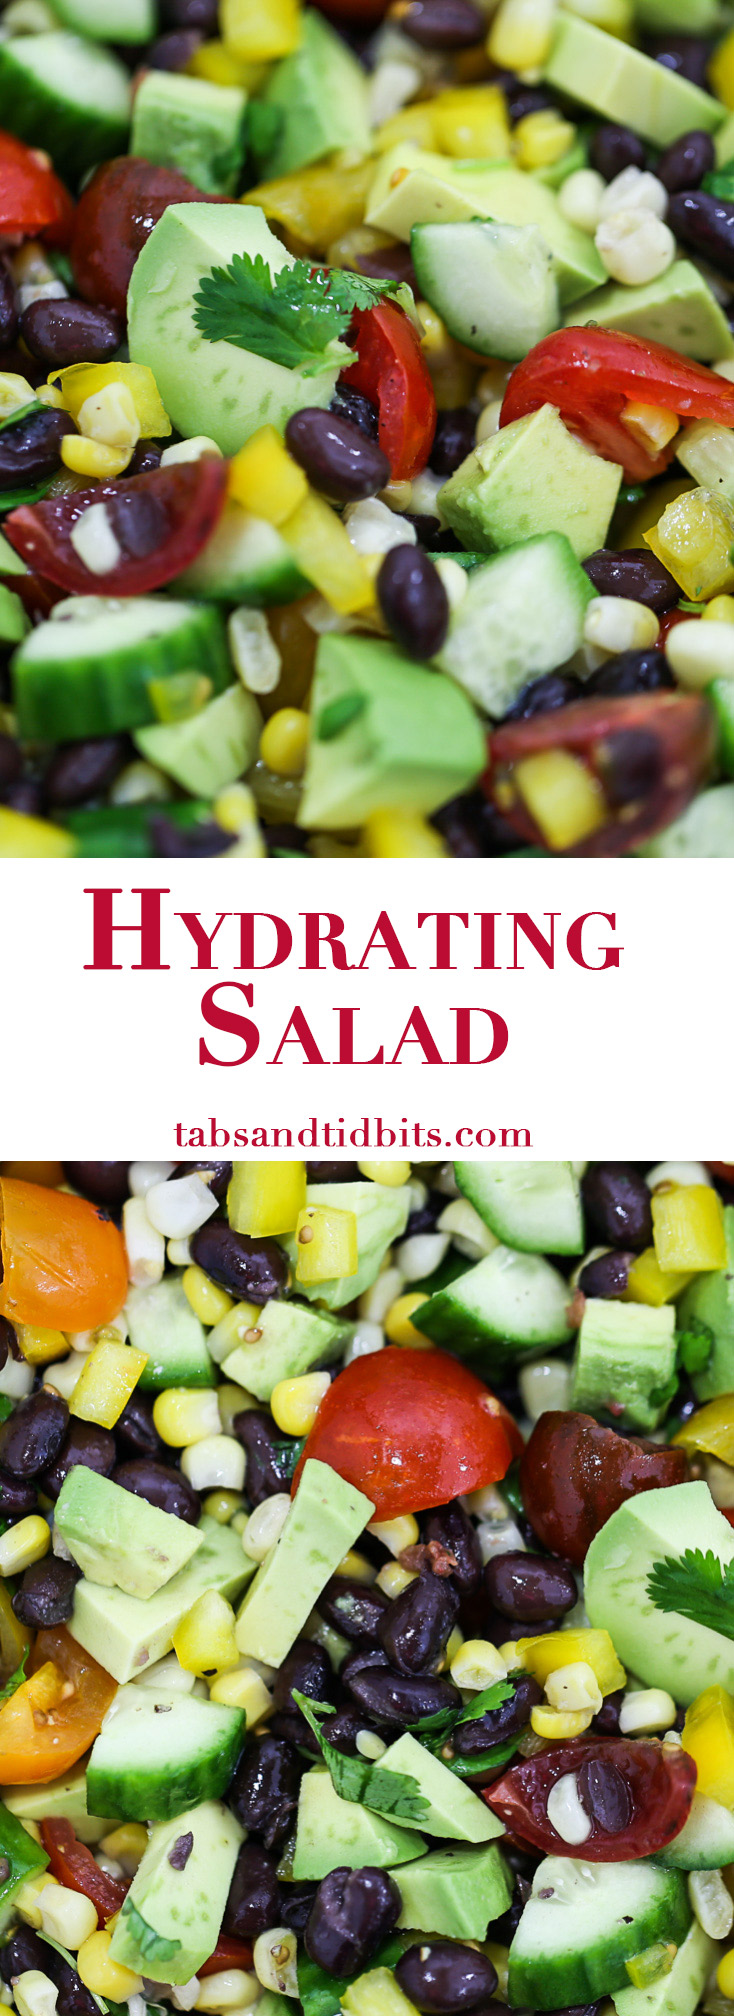 Hydrating Salad - A colorful and refreshing salad full of veggies that provide delicious hydration.